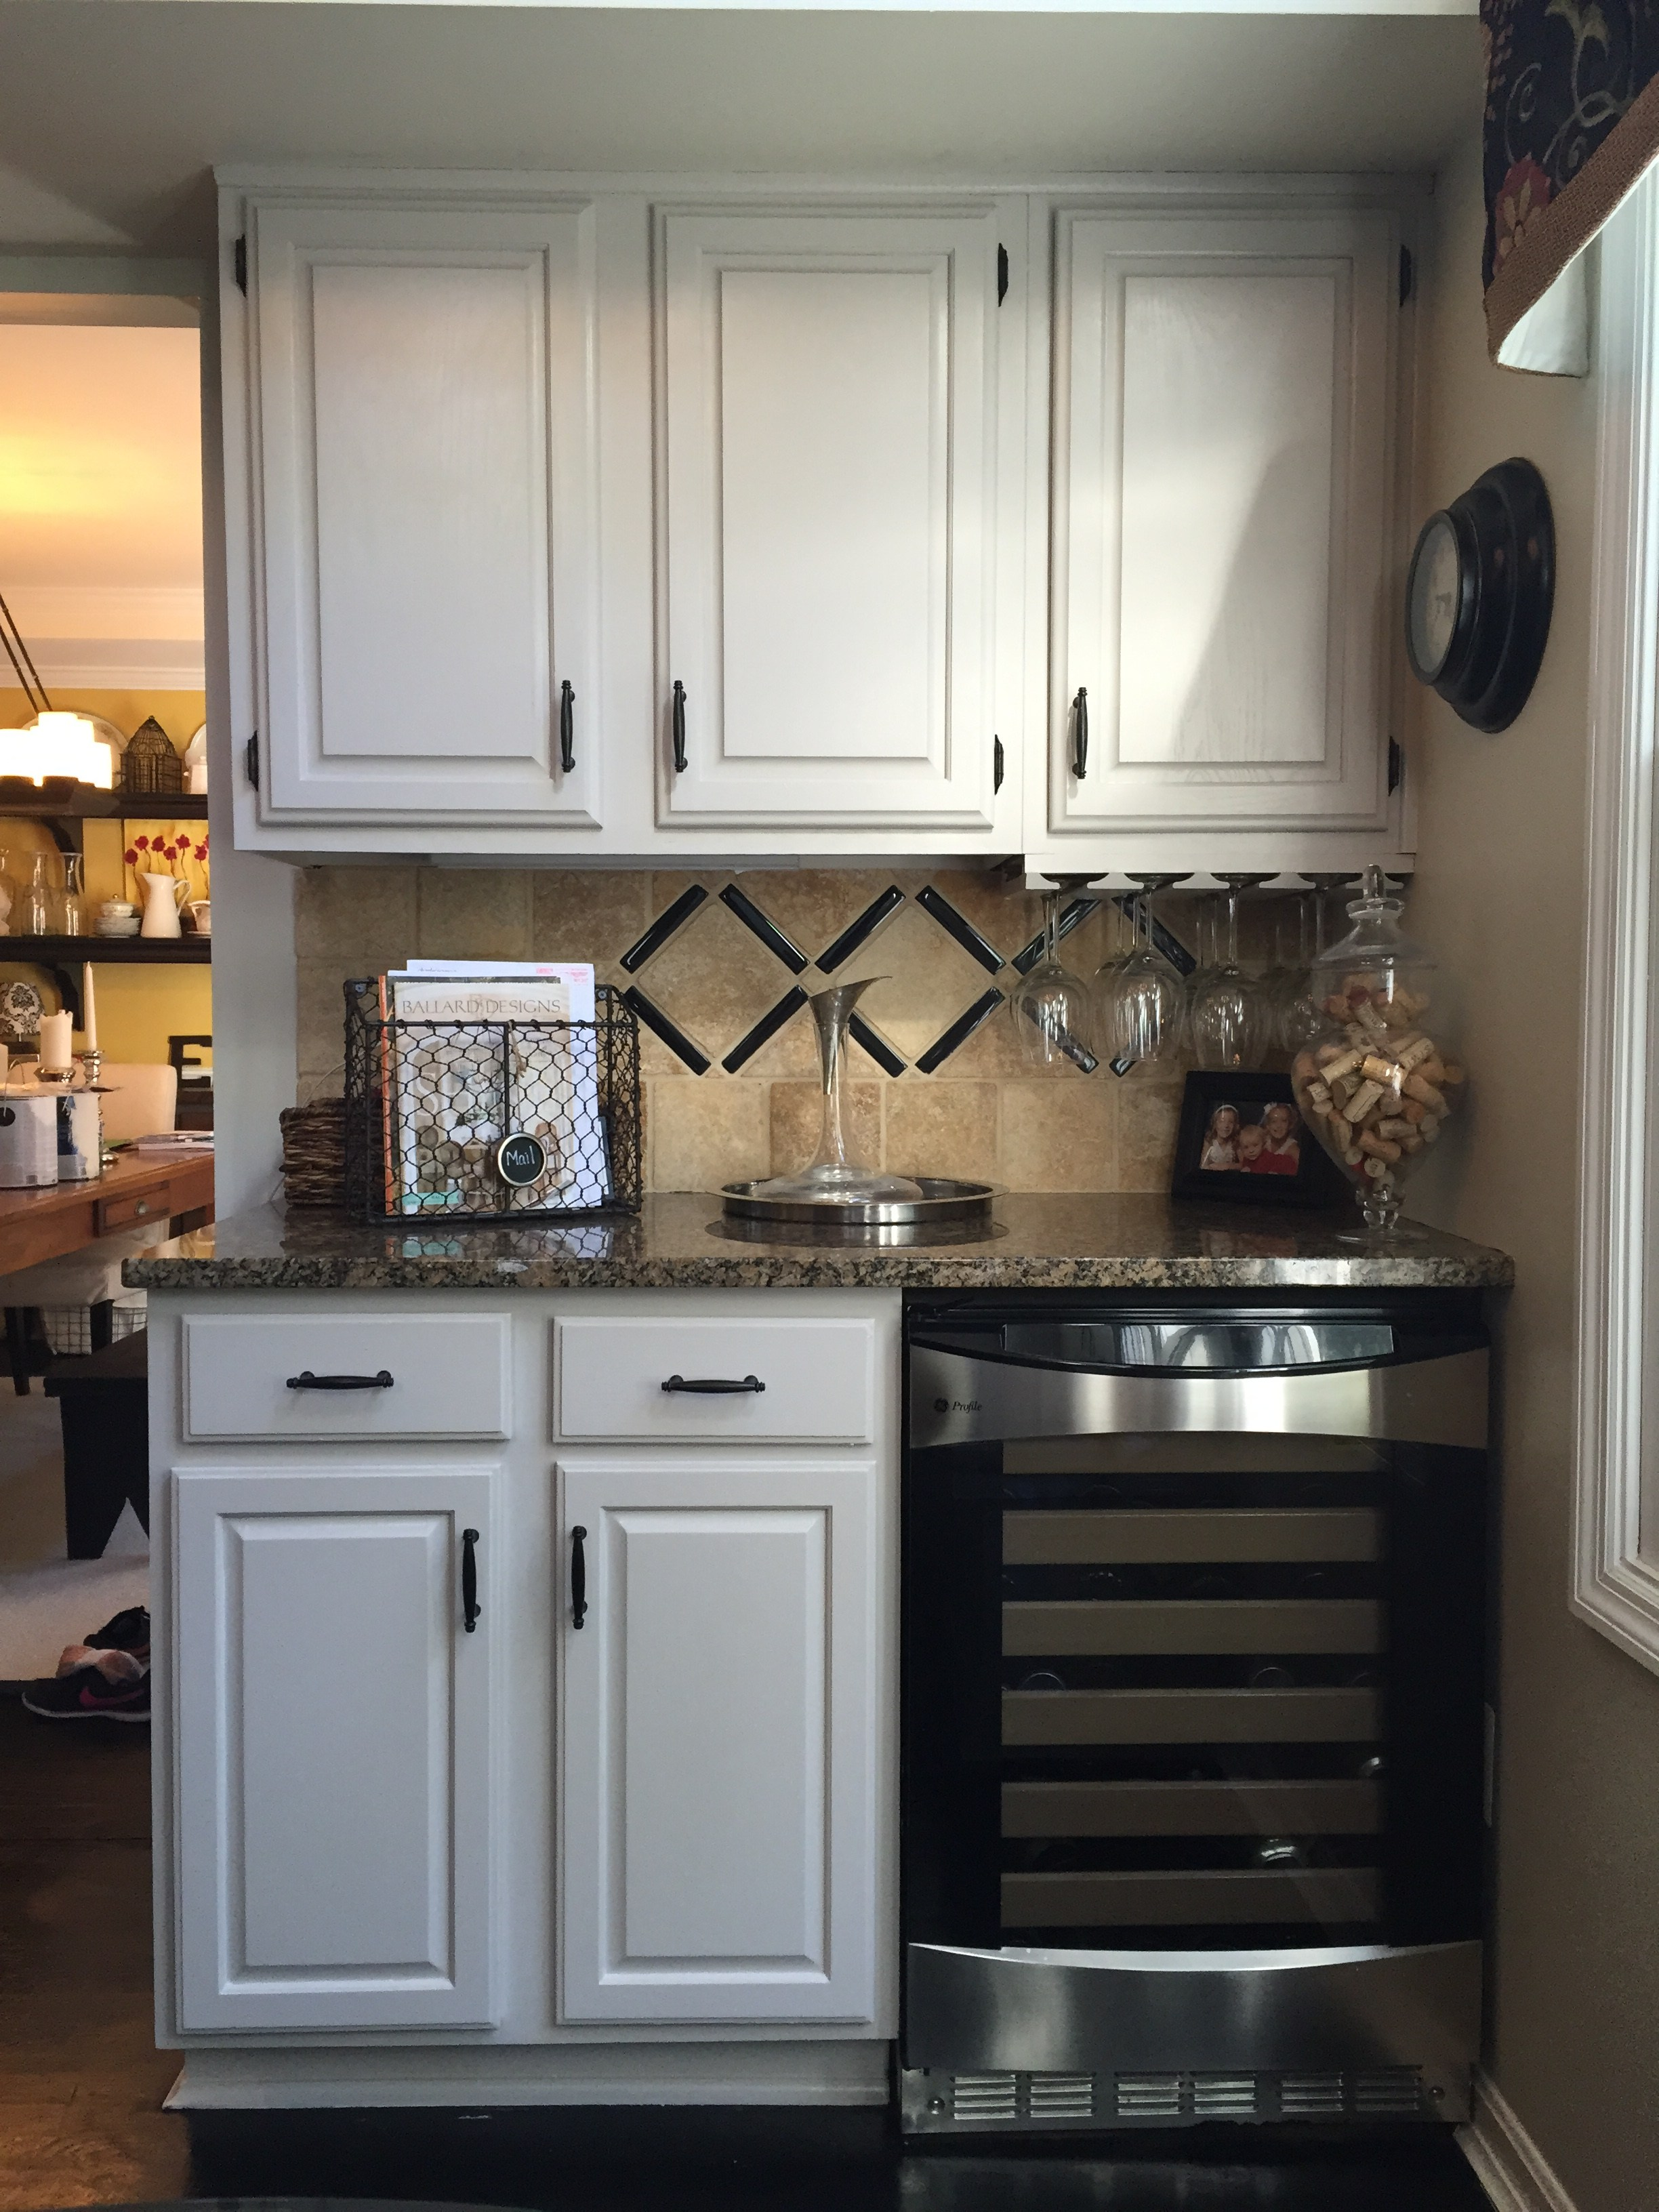 Diy How I Painted My Kitchen Cabinets White Cottage